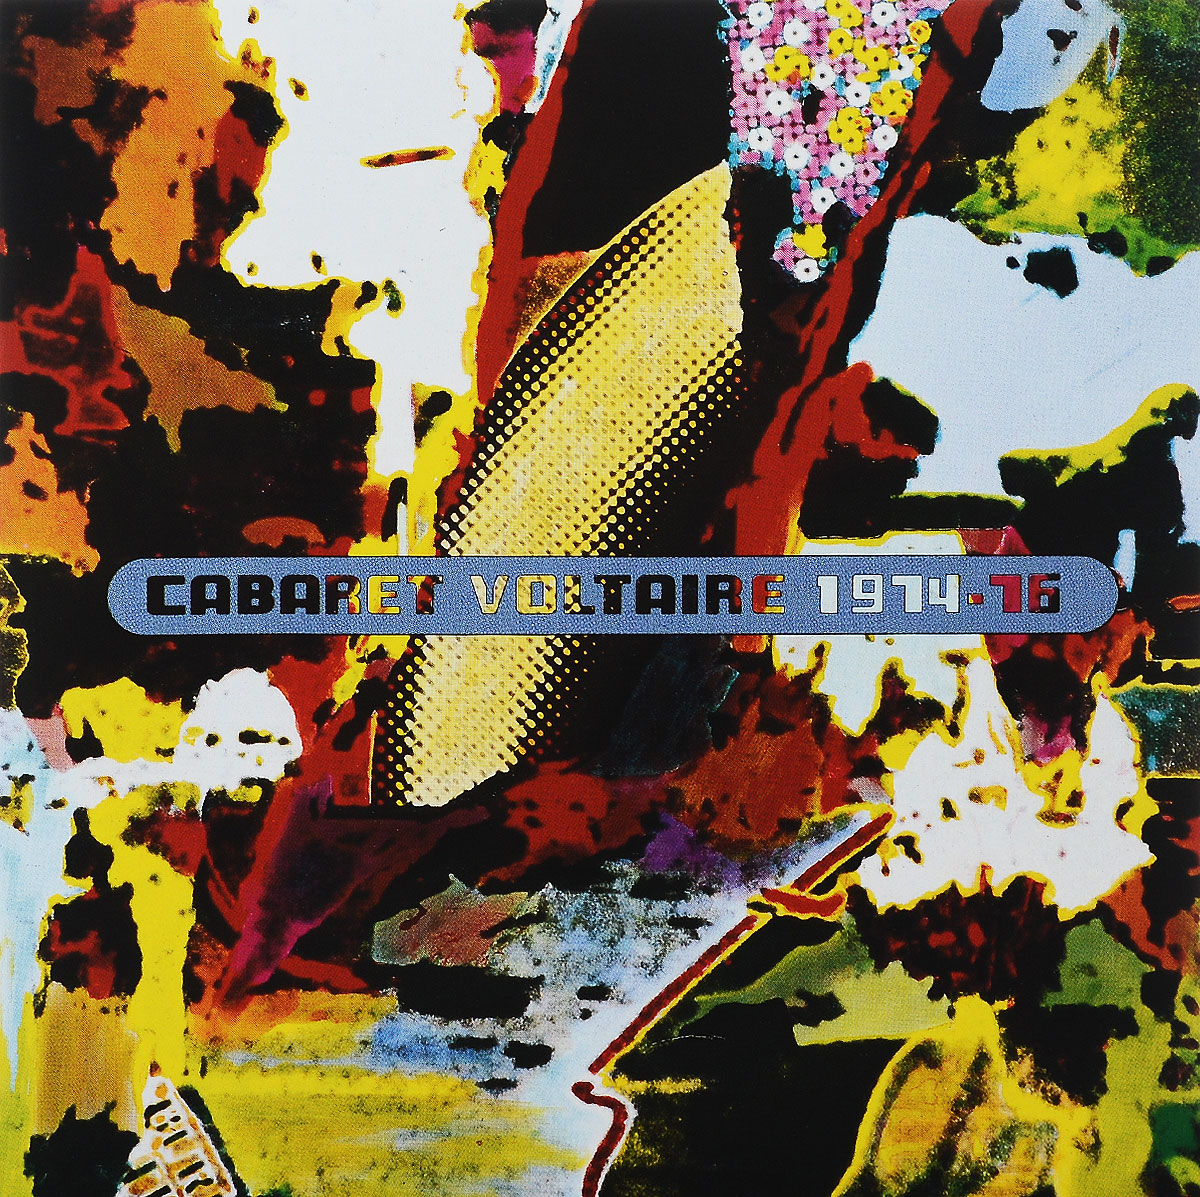 Cabaret Voltaire Cabaret Voltaire. 1974-76 cabaret voltaire cabaret voltaire the original sound of sheffield 78 82 best of